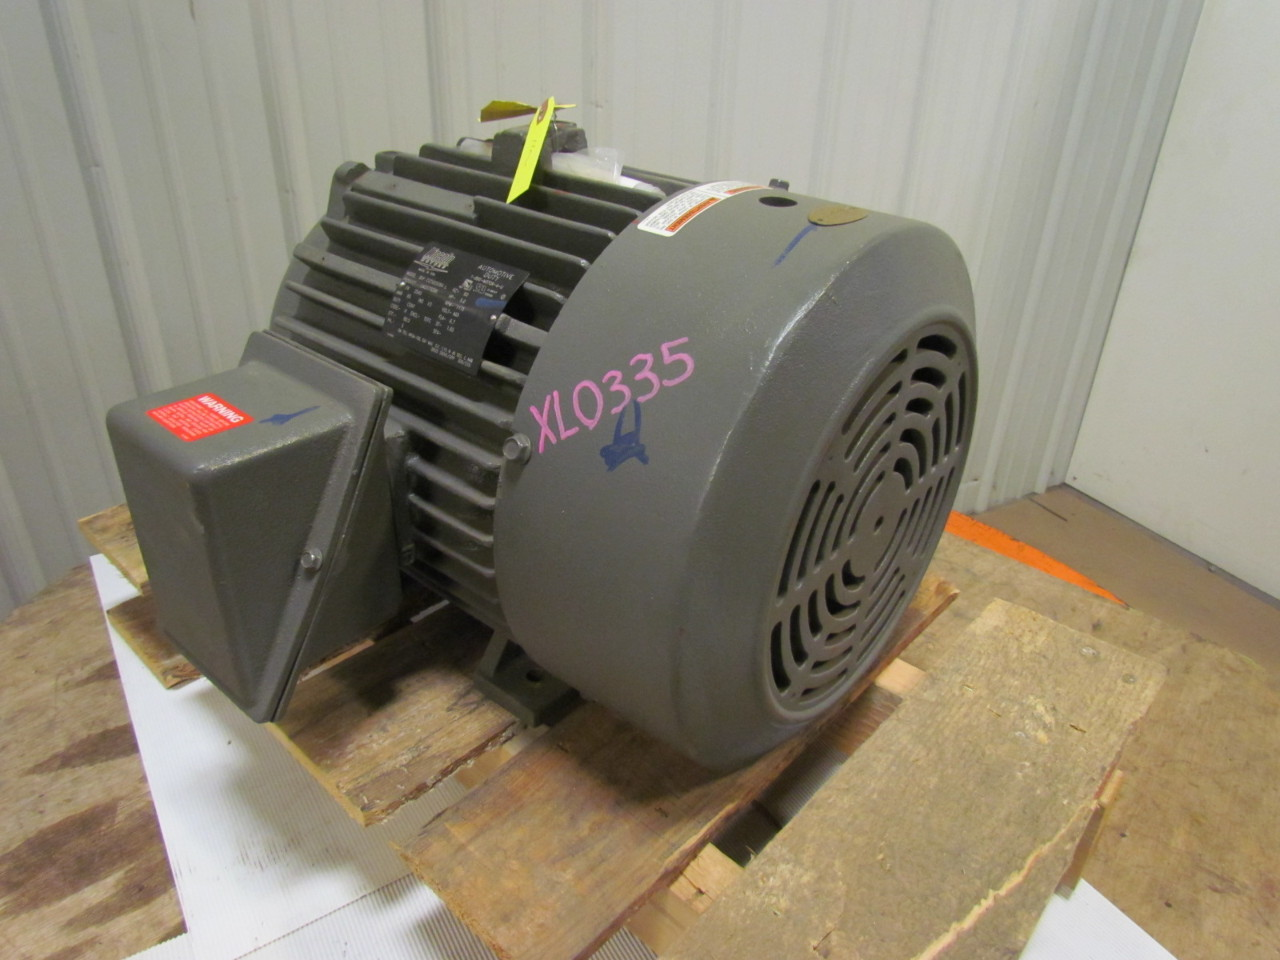 Lincoln Lm23732bb 3 Phase Electric Motor 5hp 460v 1175 Rpm